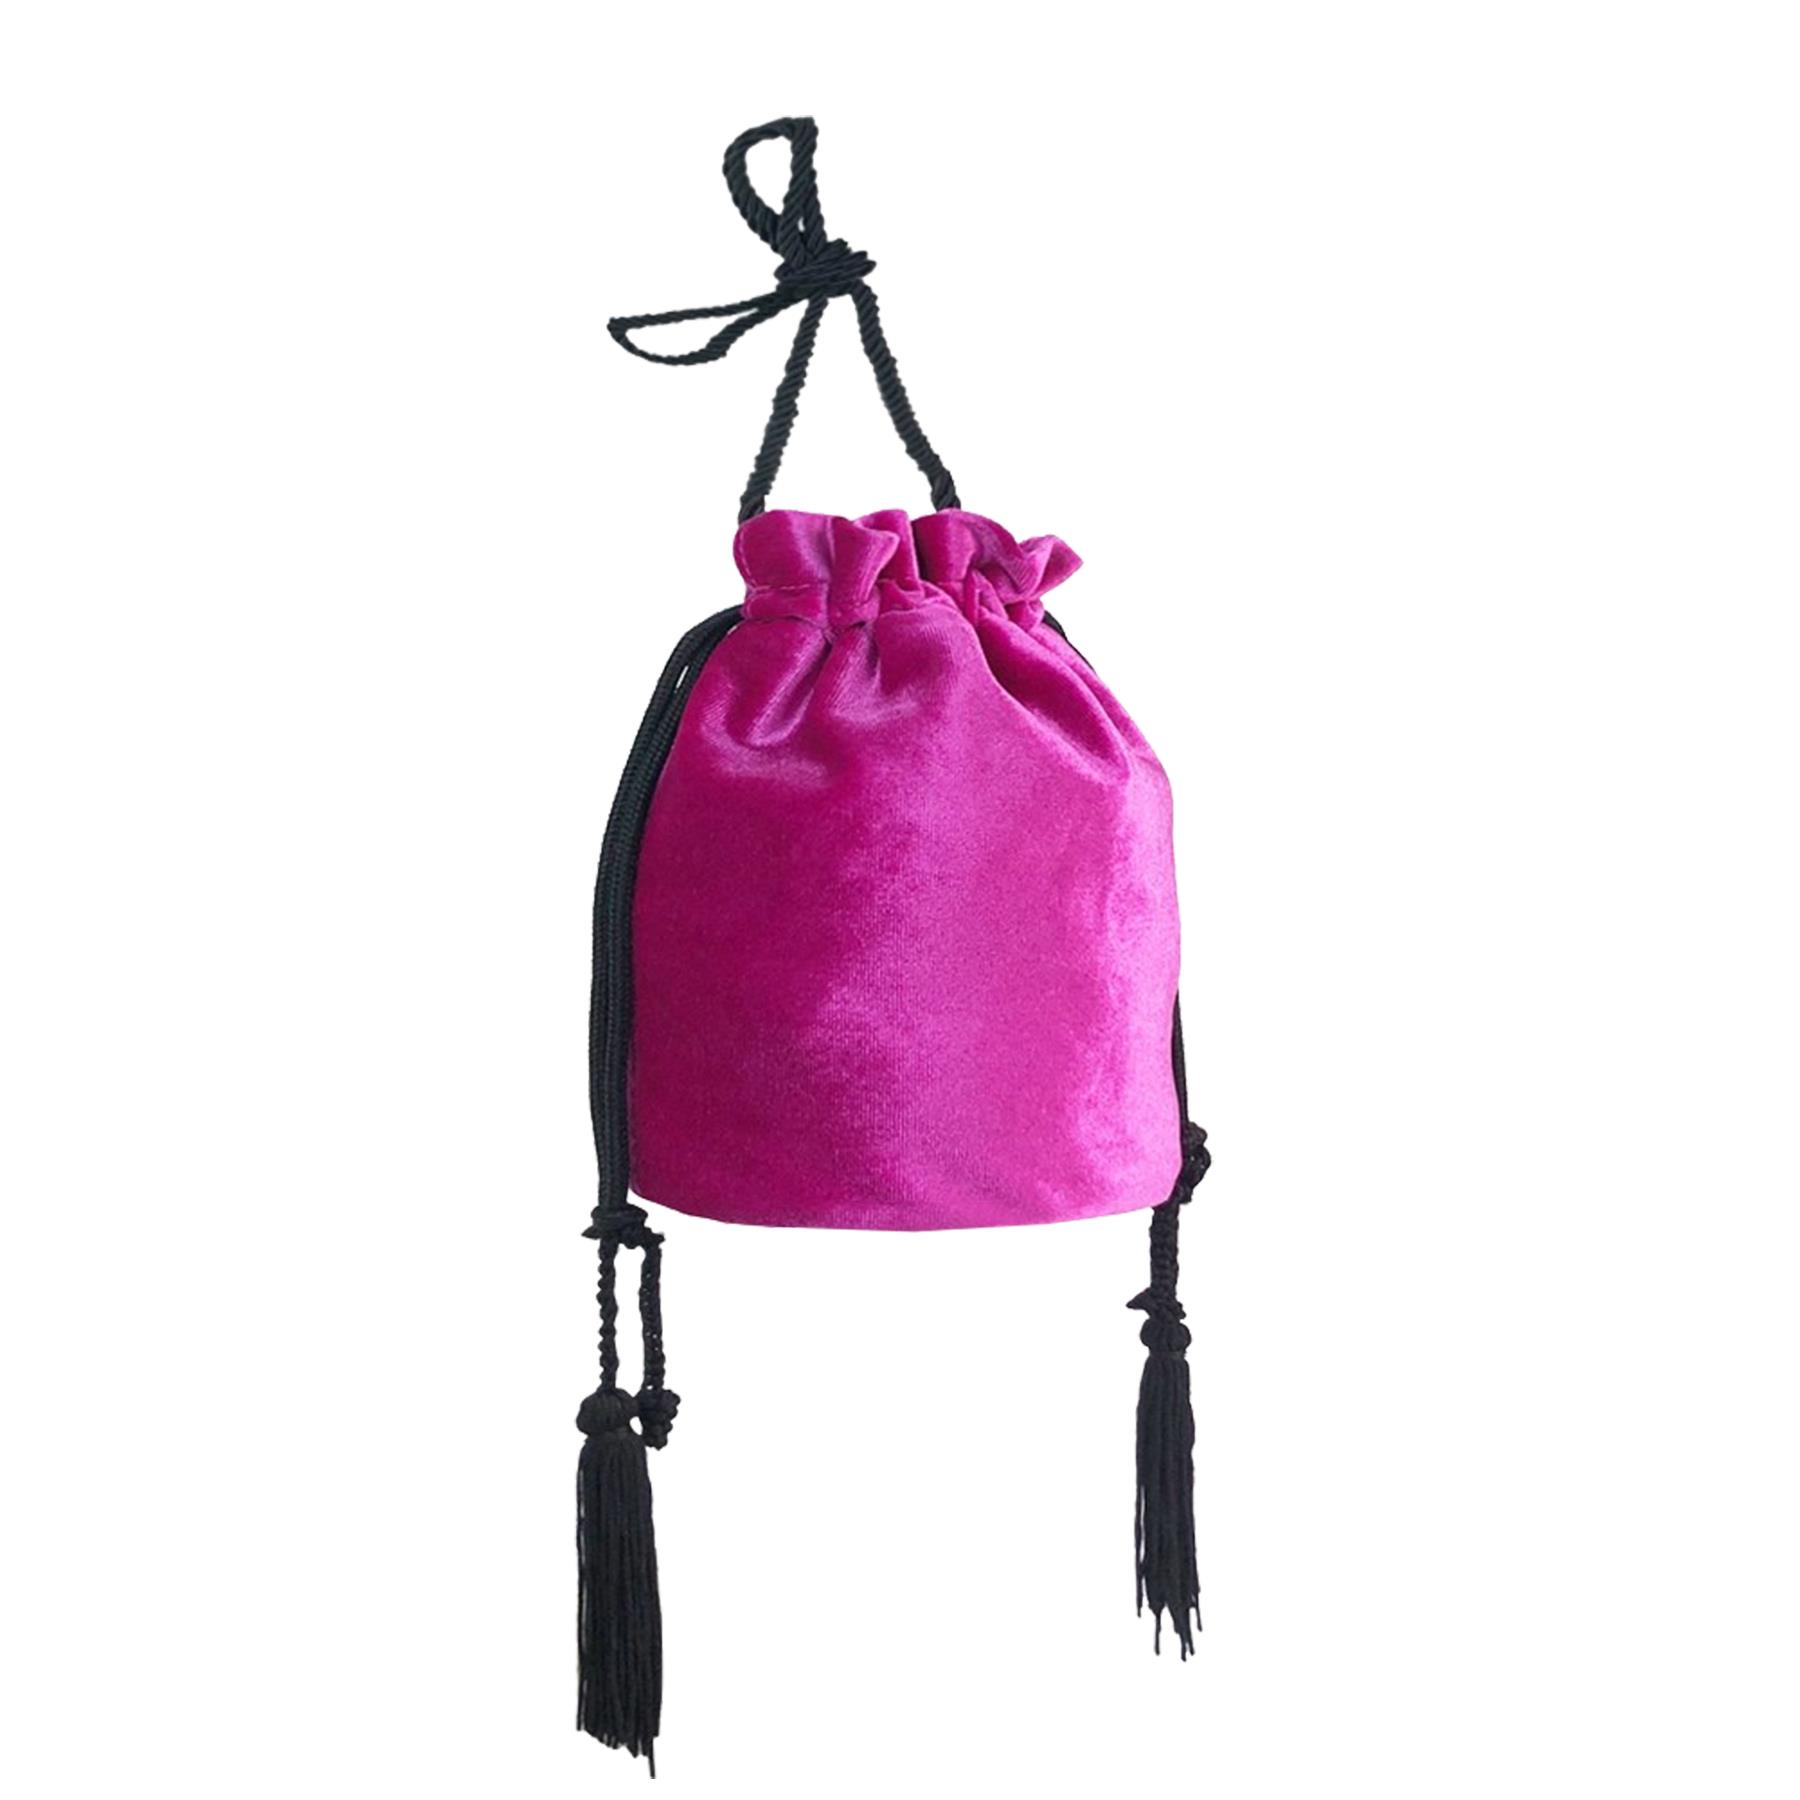 New-Women-s-Drawstring-Velvet-Velour-Tassels-Rope-Strap-Retro-Pouch-Bag thumbnail 15